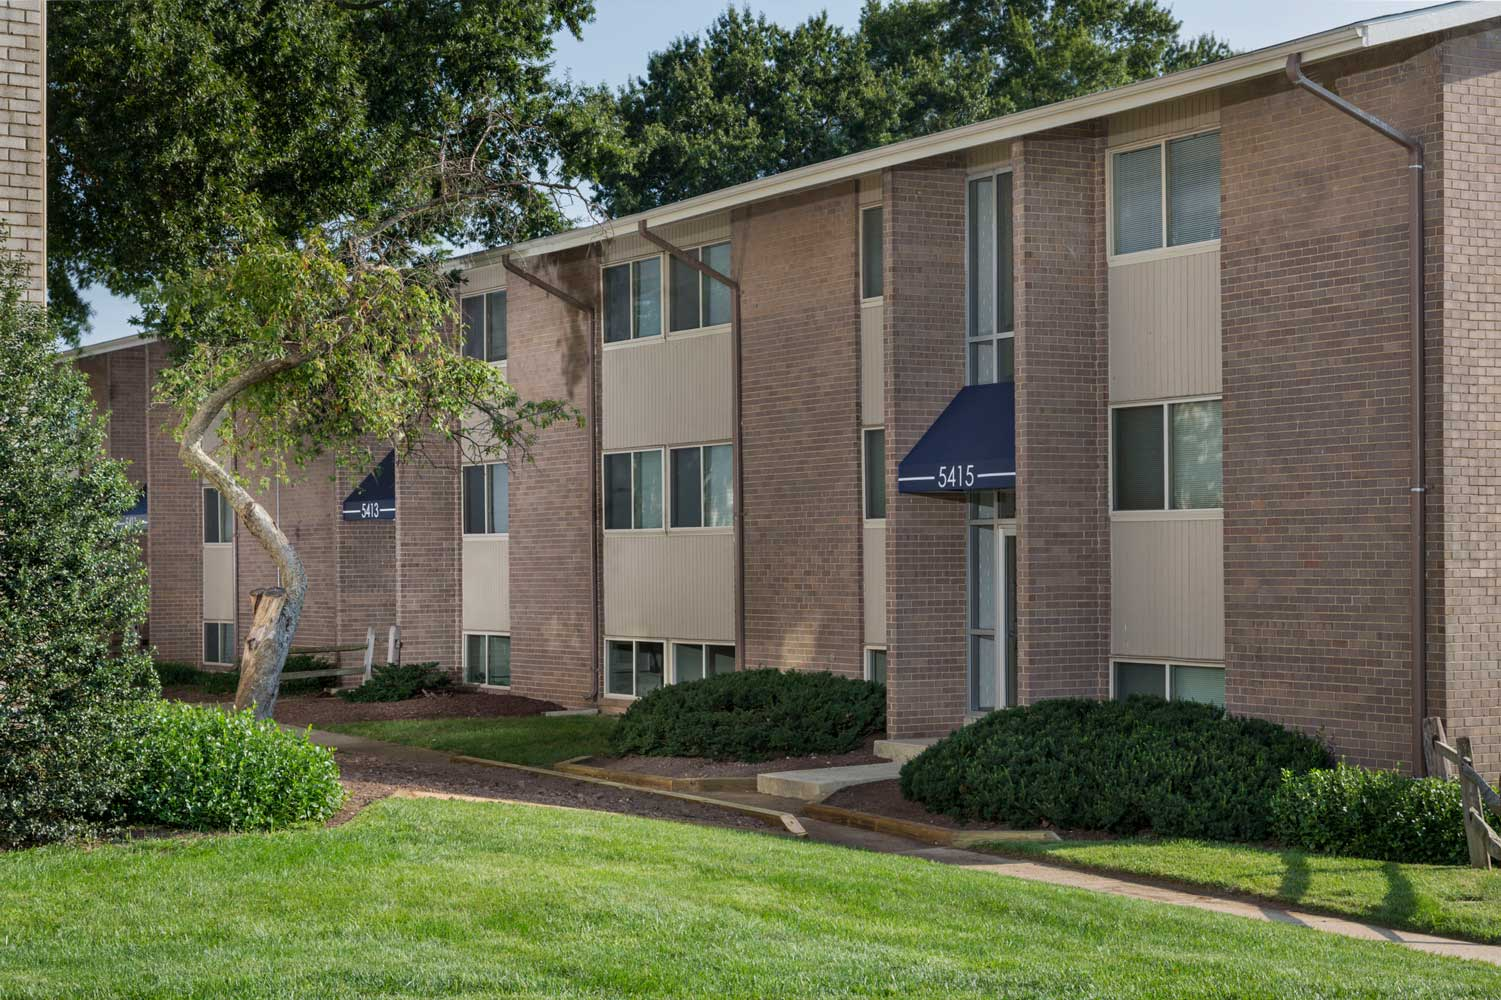 1, 2 and 3 Bedroom Apartments at Carrollon Manor Apartments in New Carrollton, MD